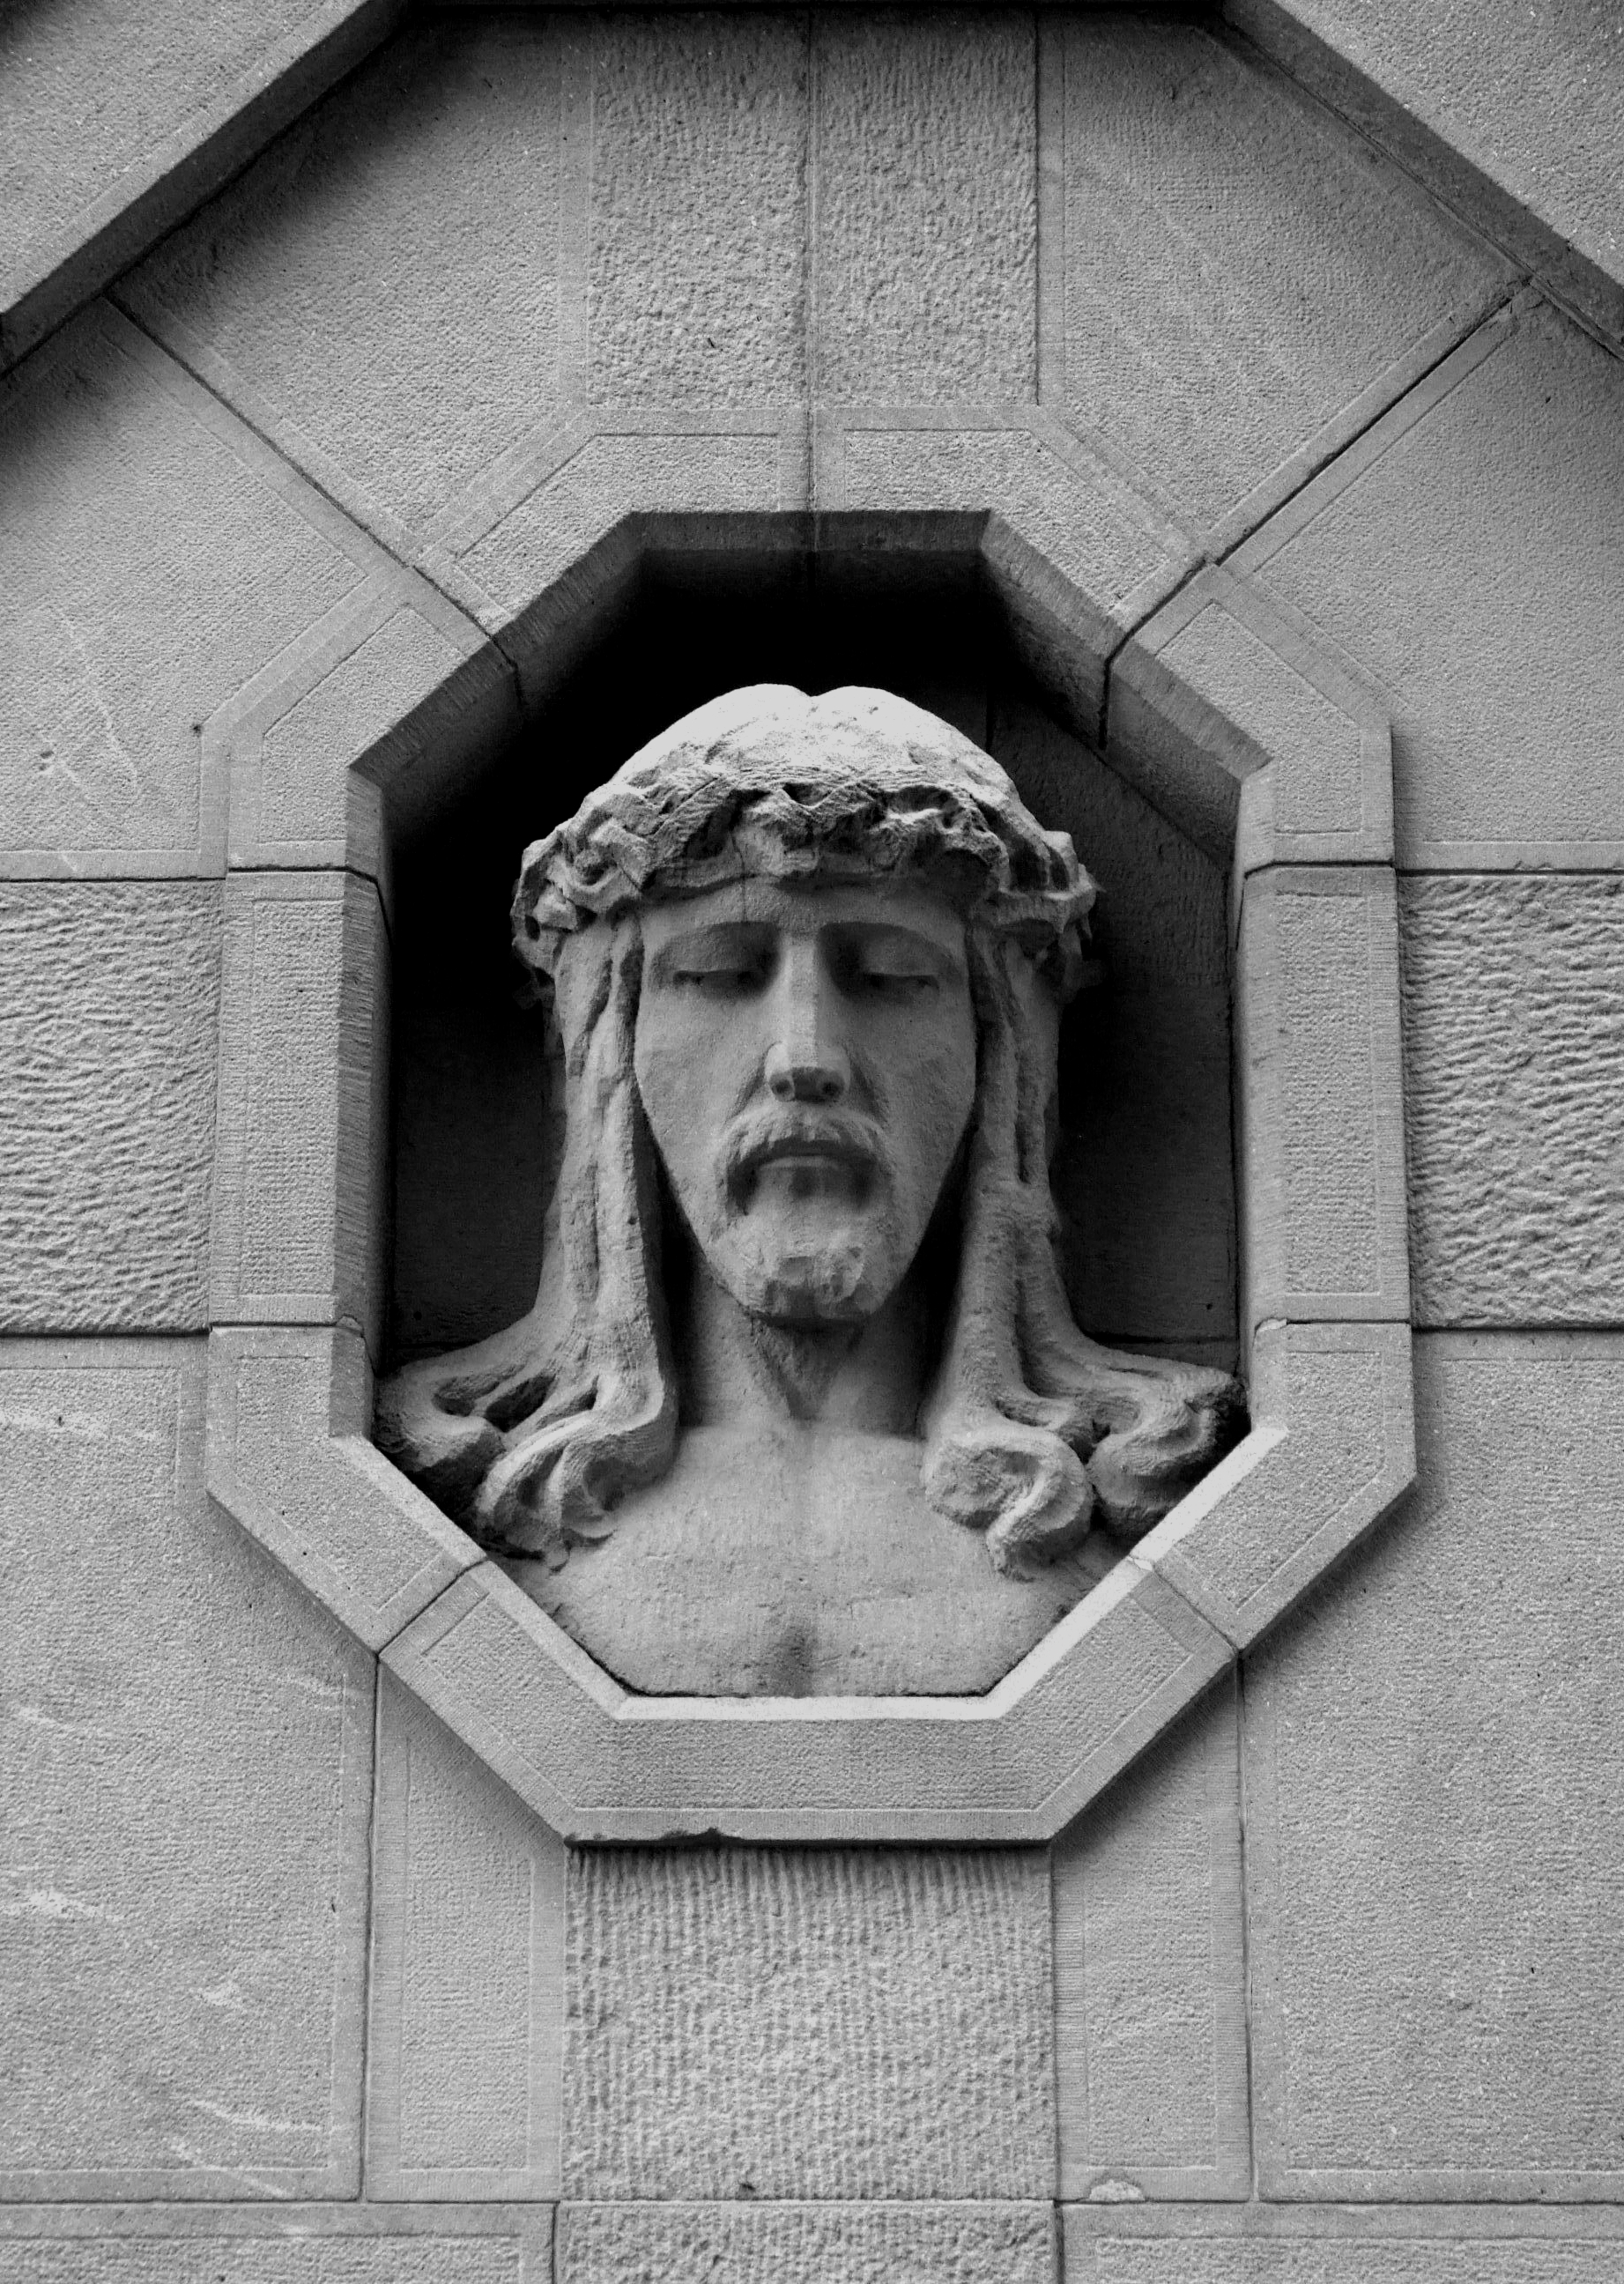 WWI cemetery nr 225 - Brzostek. Head of Jesus